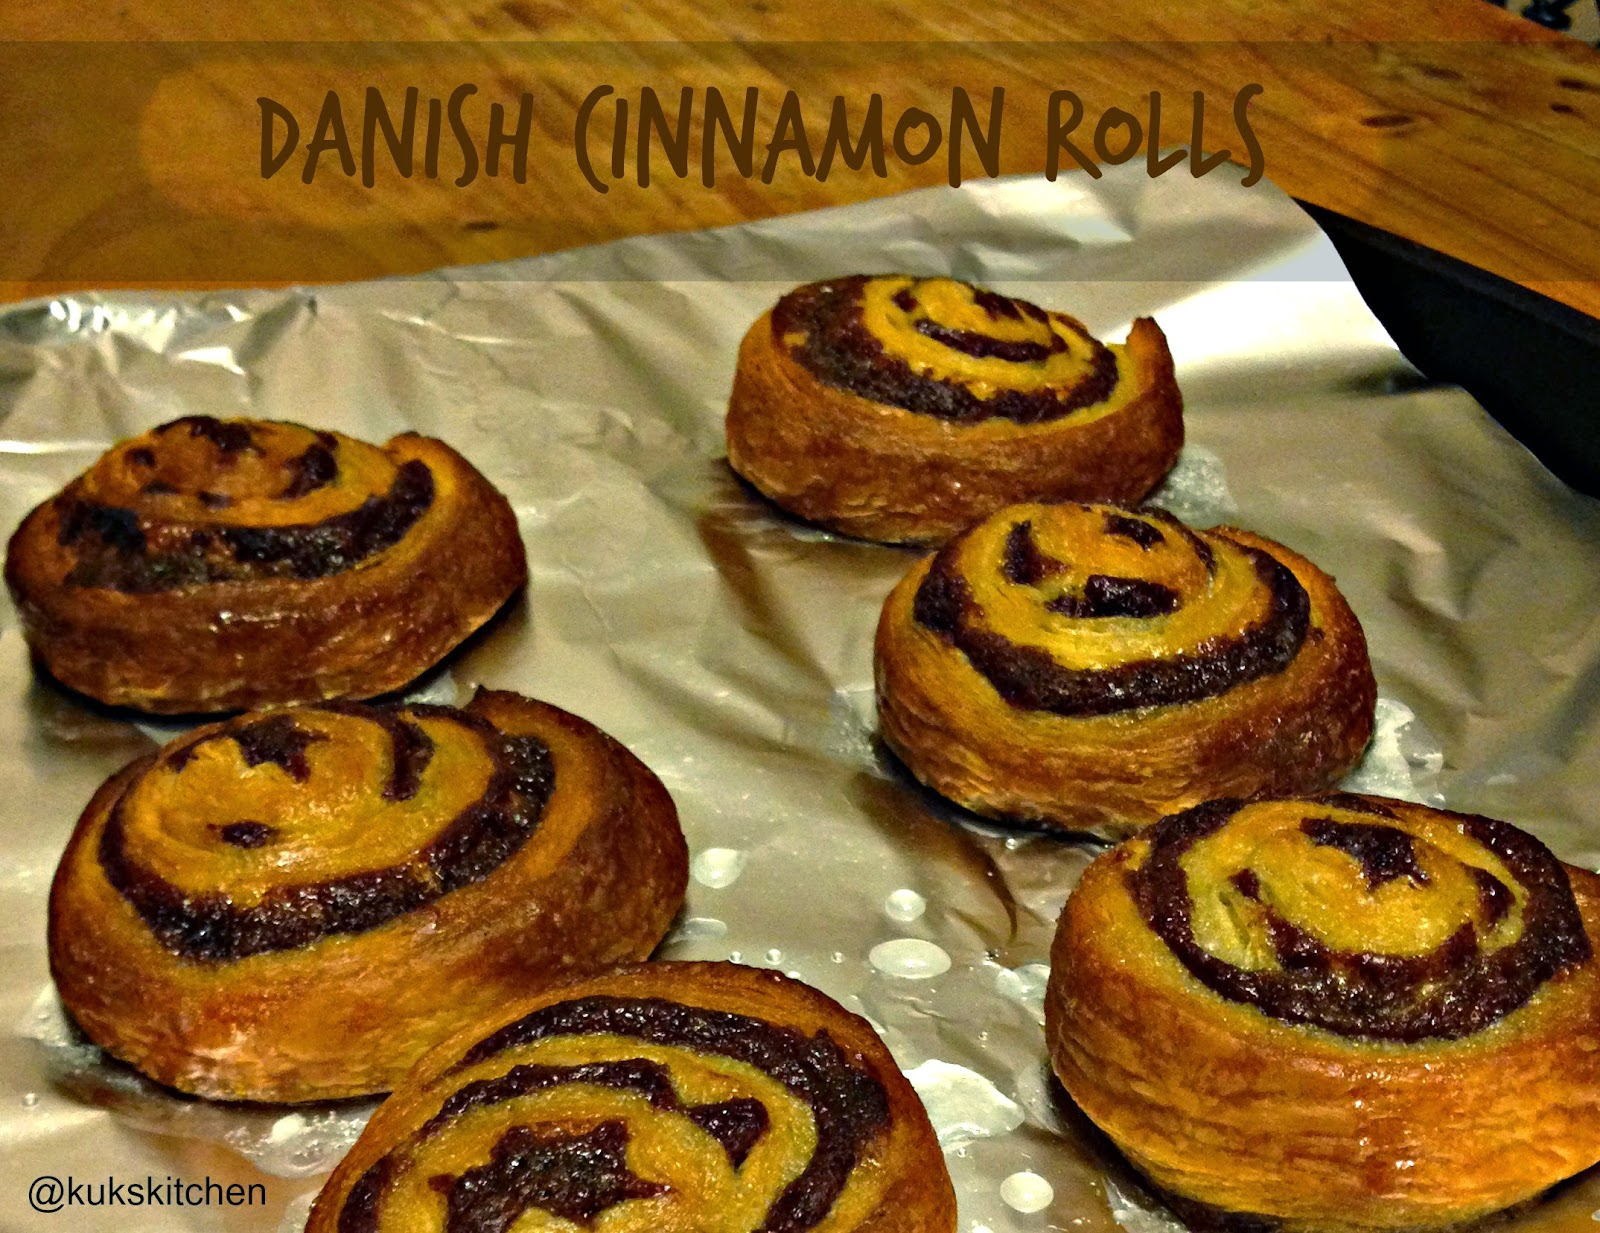 Cinnamon rolls | Danish |  Kukskitchen